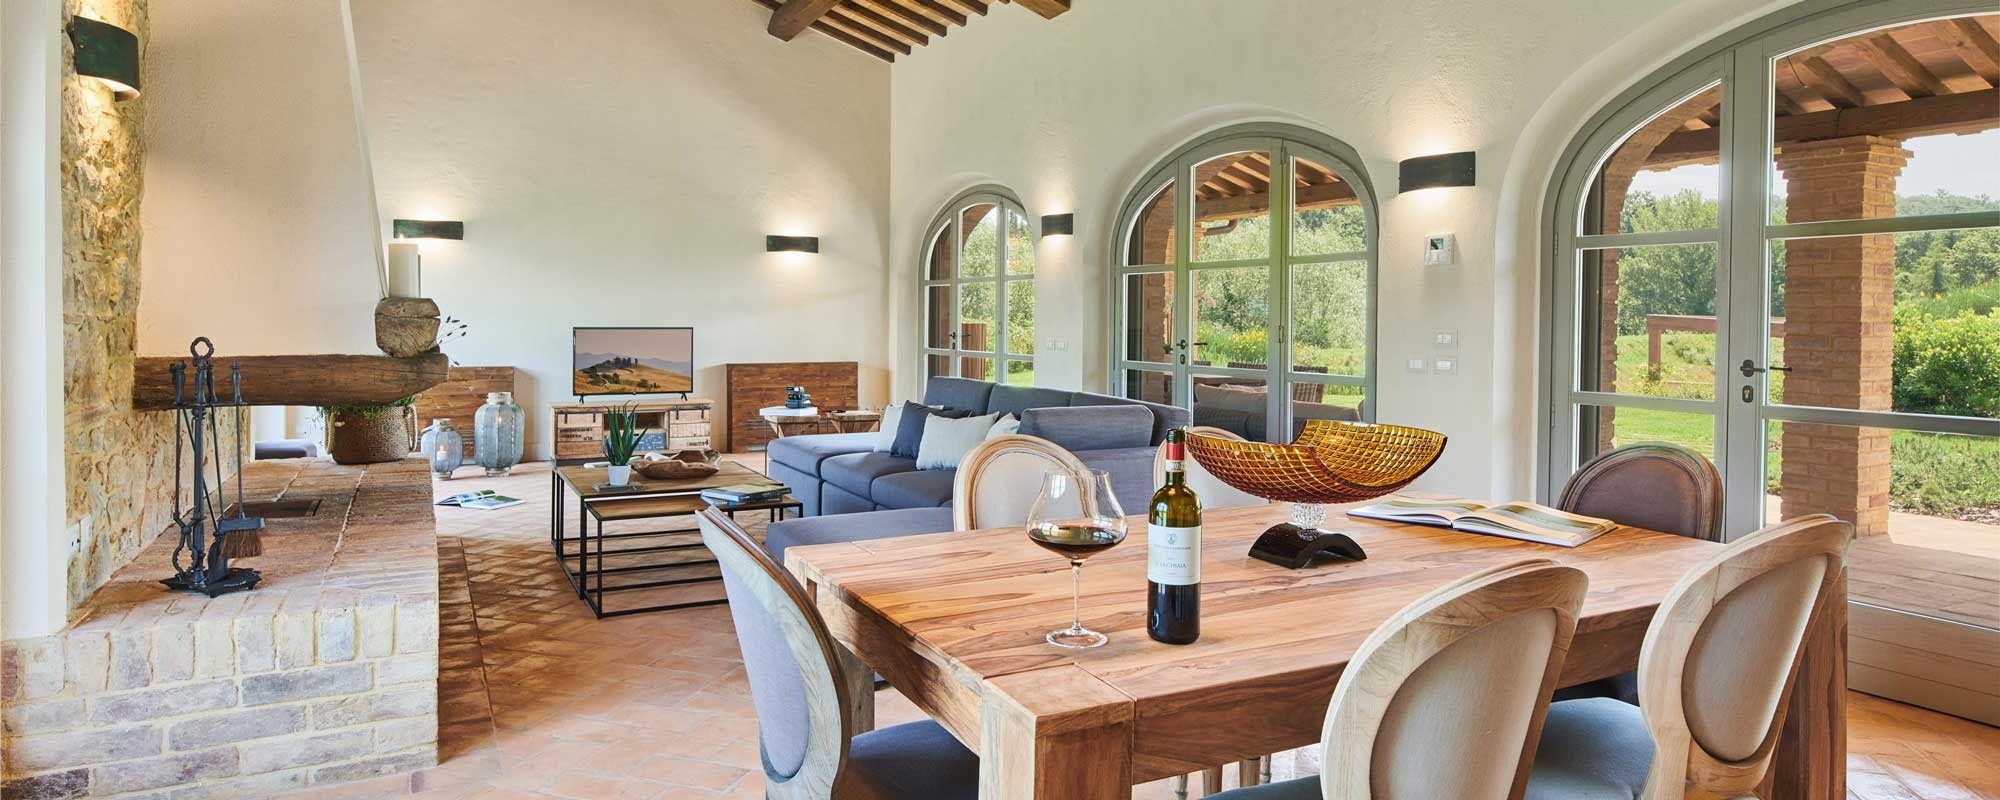 Living/dining room with beautiful view in La Spina C, Castelfalfi